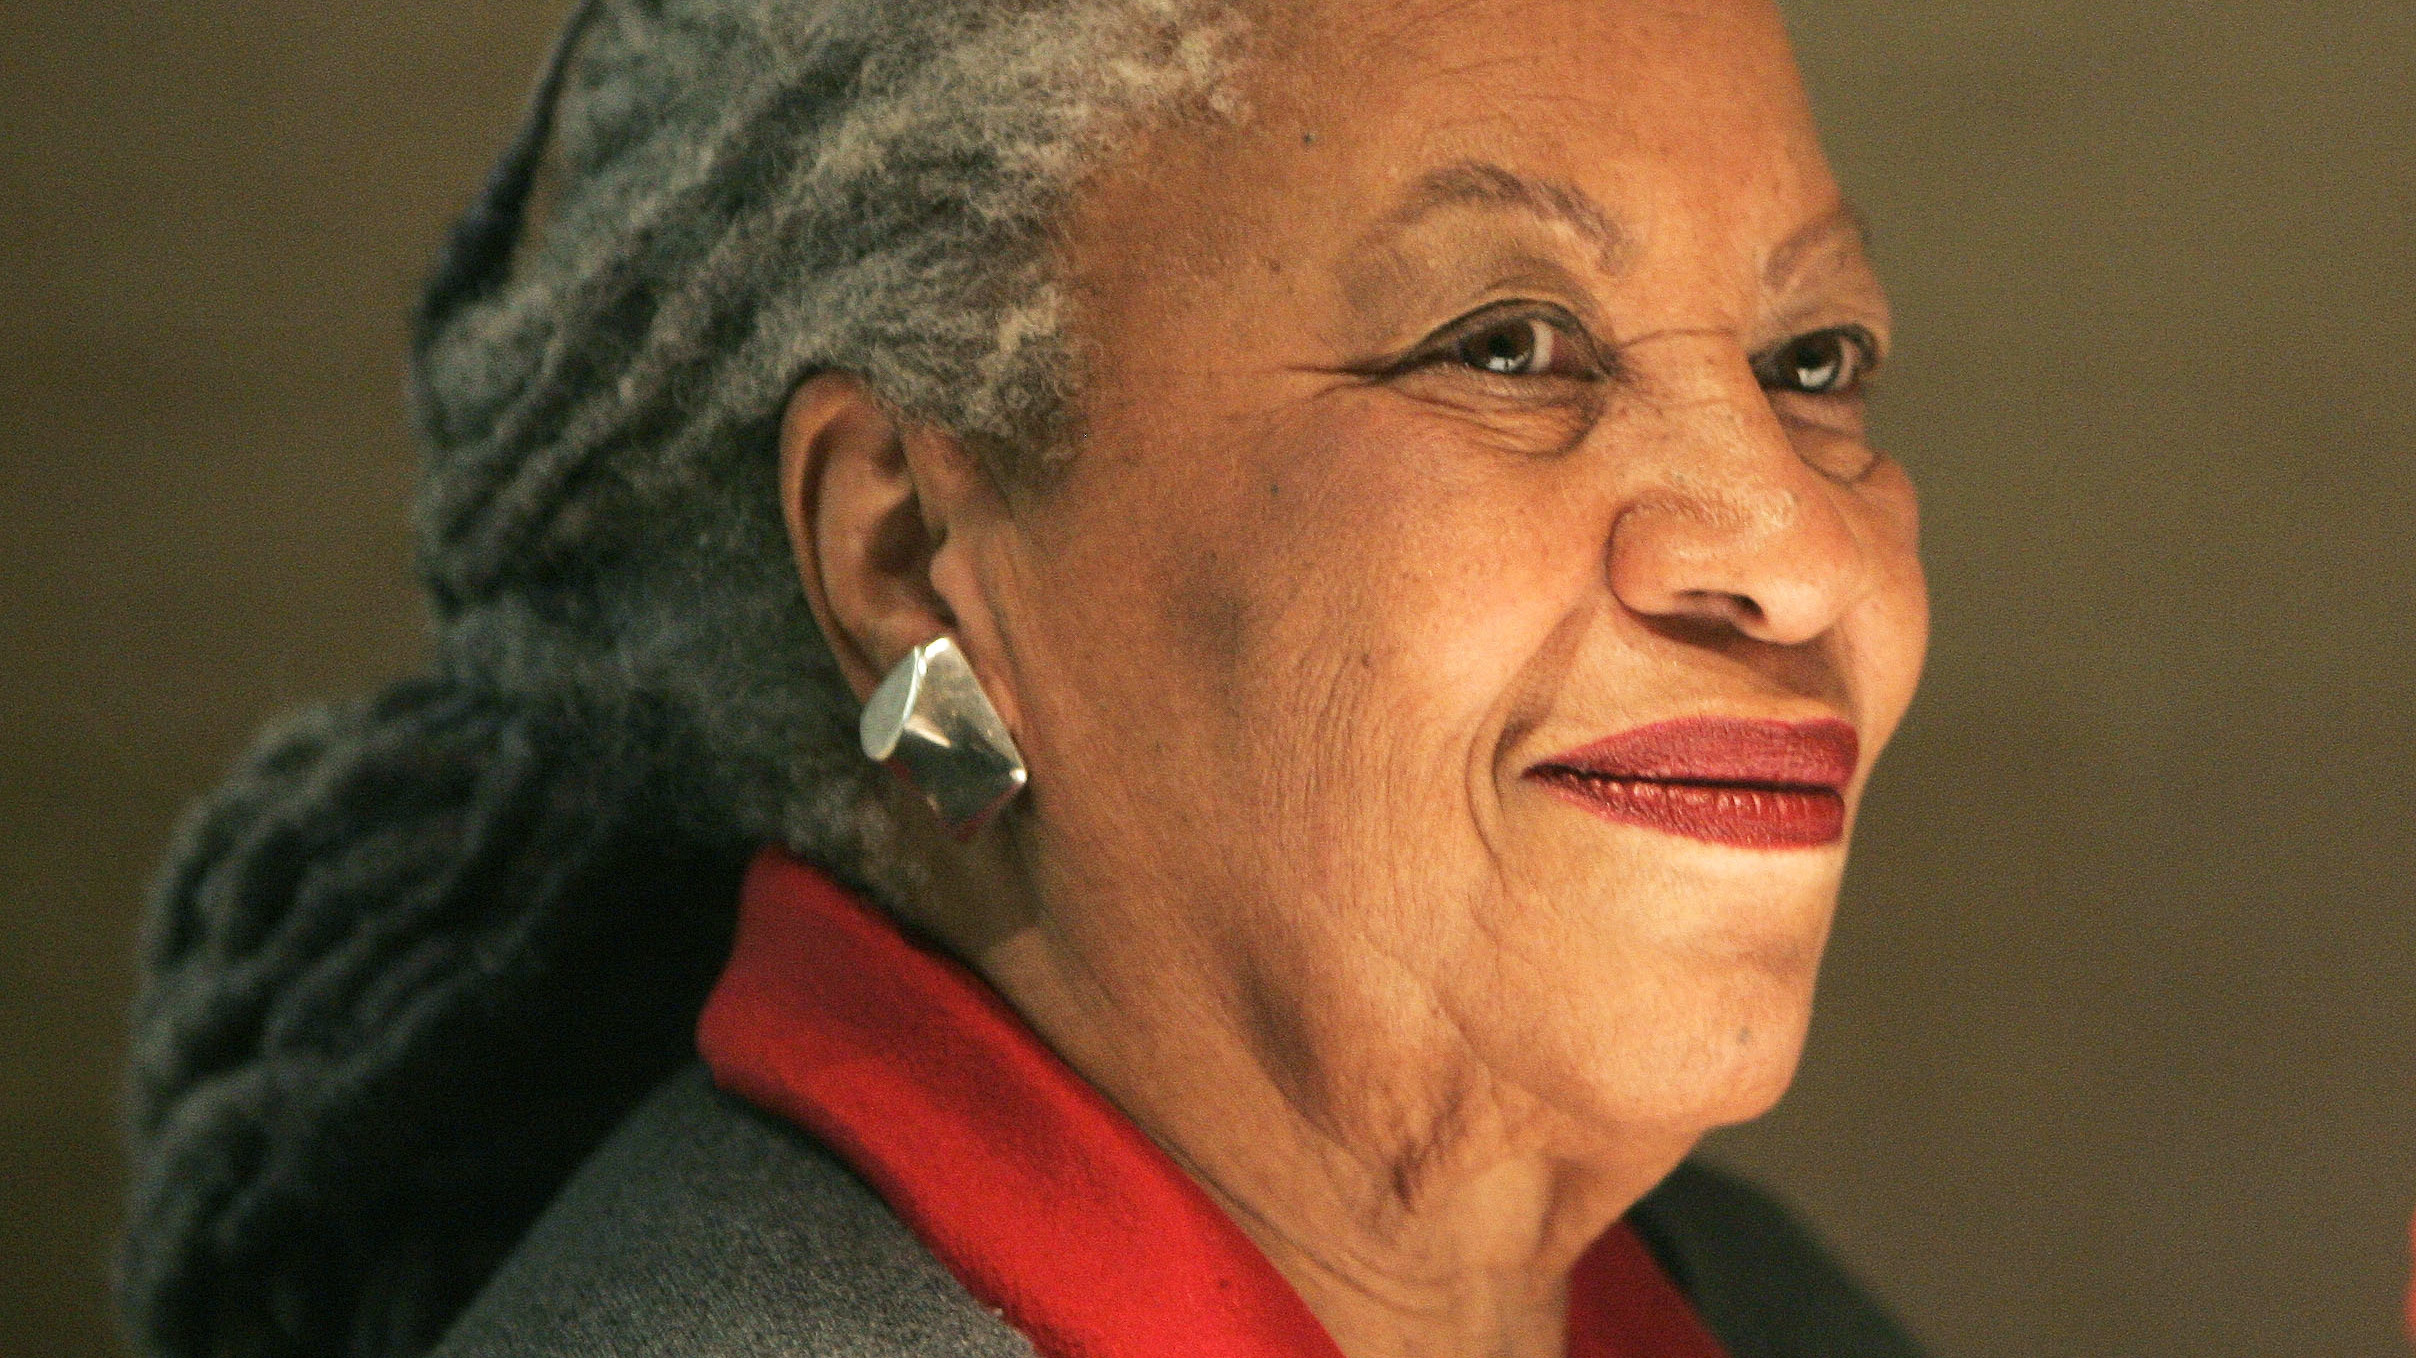 Toni Morrison was the author of Beloved, Song of Solomon and The Bluest Eye. She was awarded the Nobel Prize in Literature, the Pulitzer Prize for Fiction, and the Presidential Medal of Freedom.